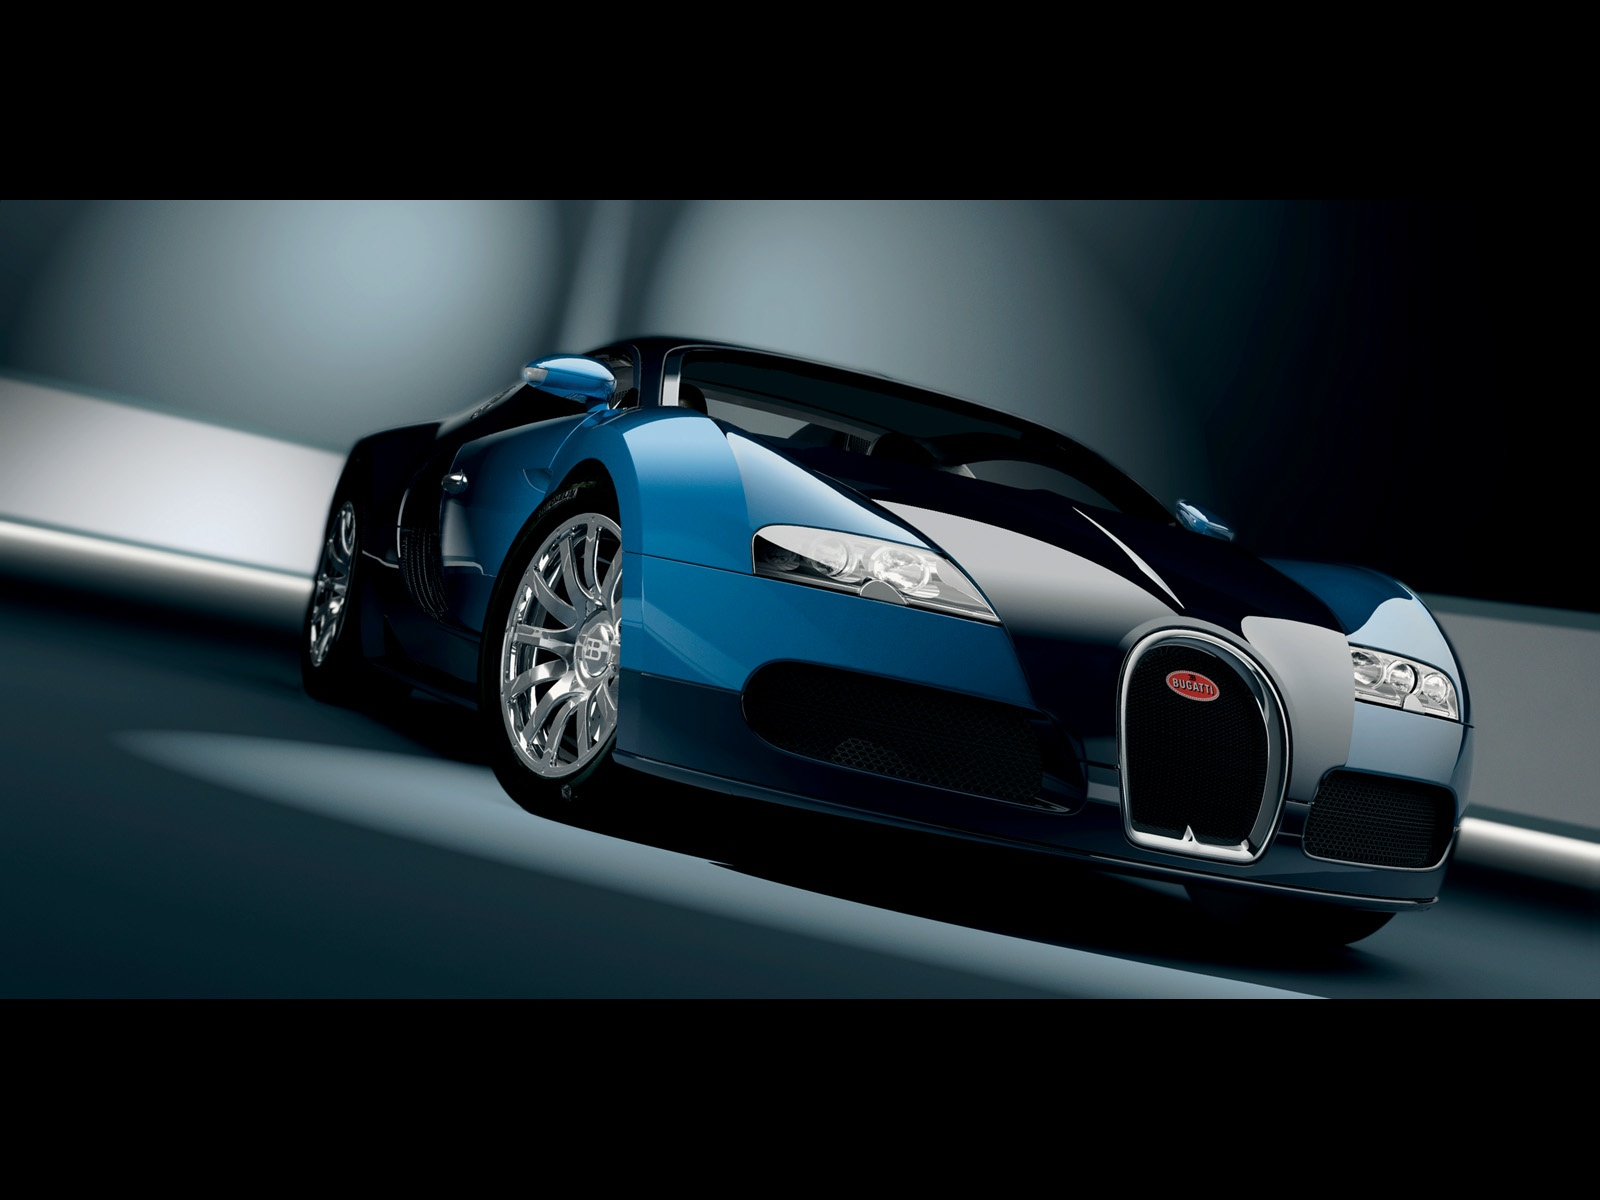 Bugatti Veyron   Cool Car Desktop Pictures 1600x1200